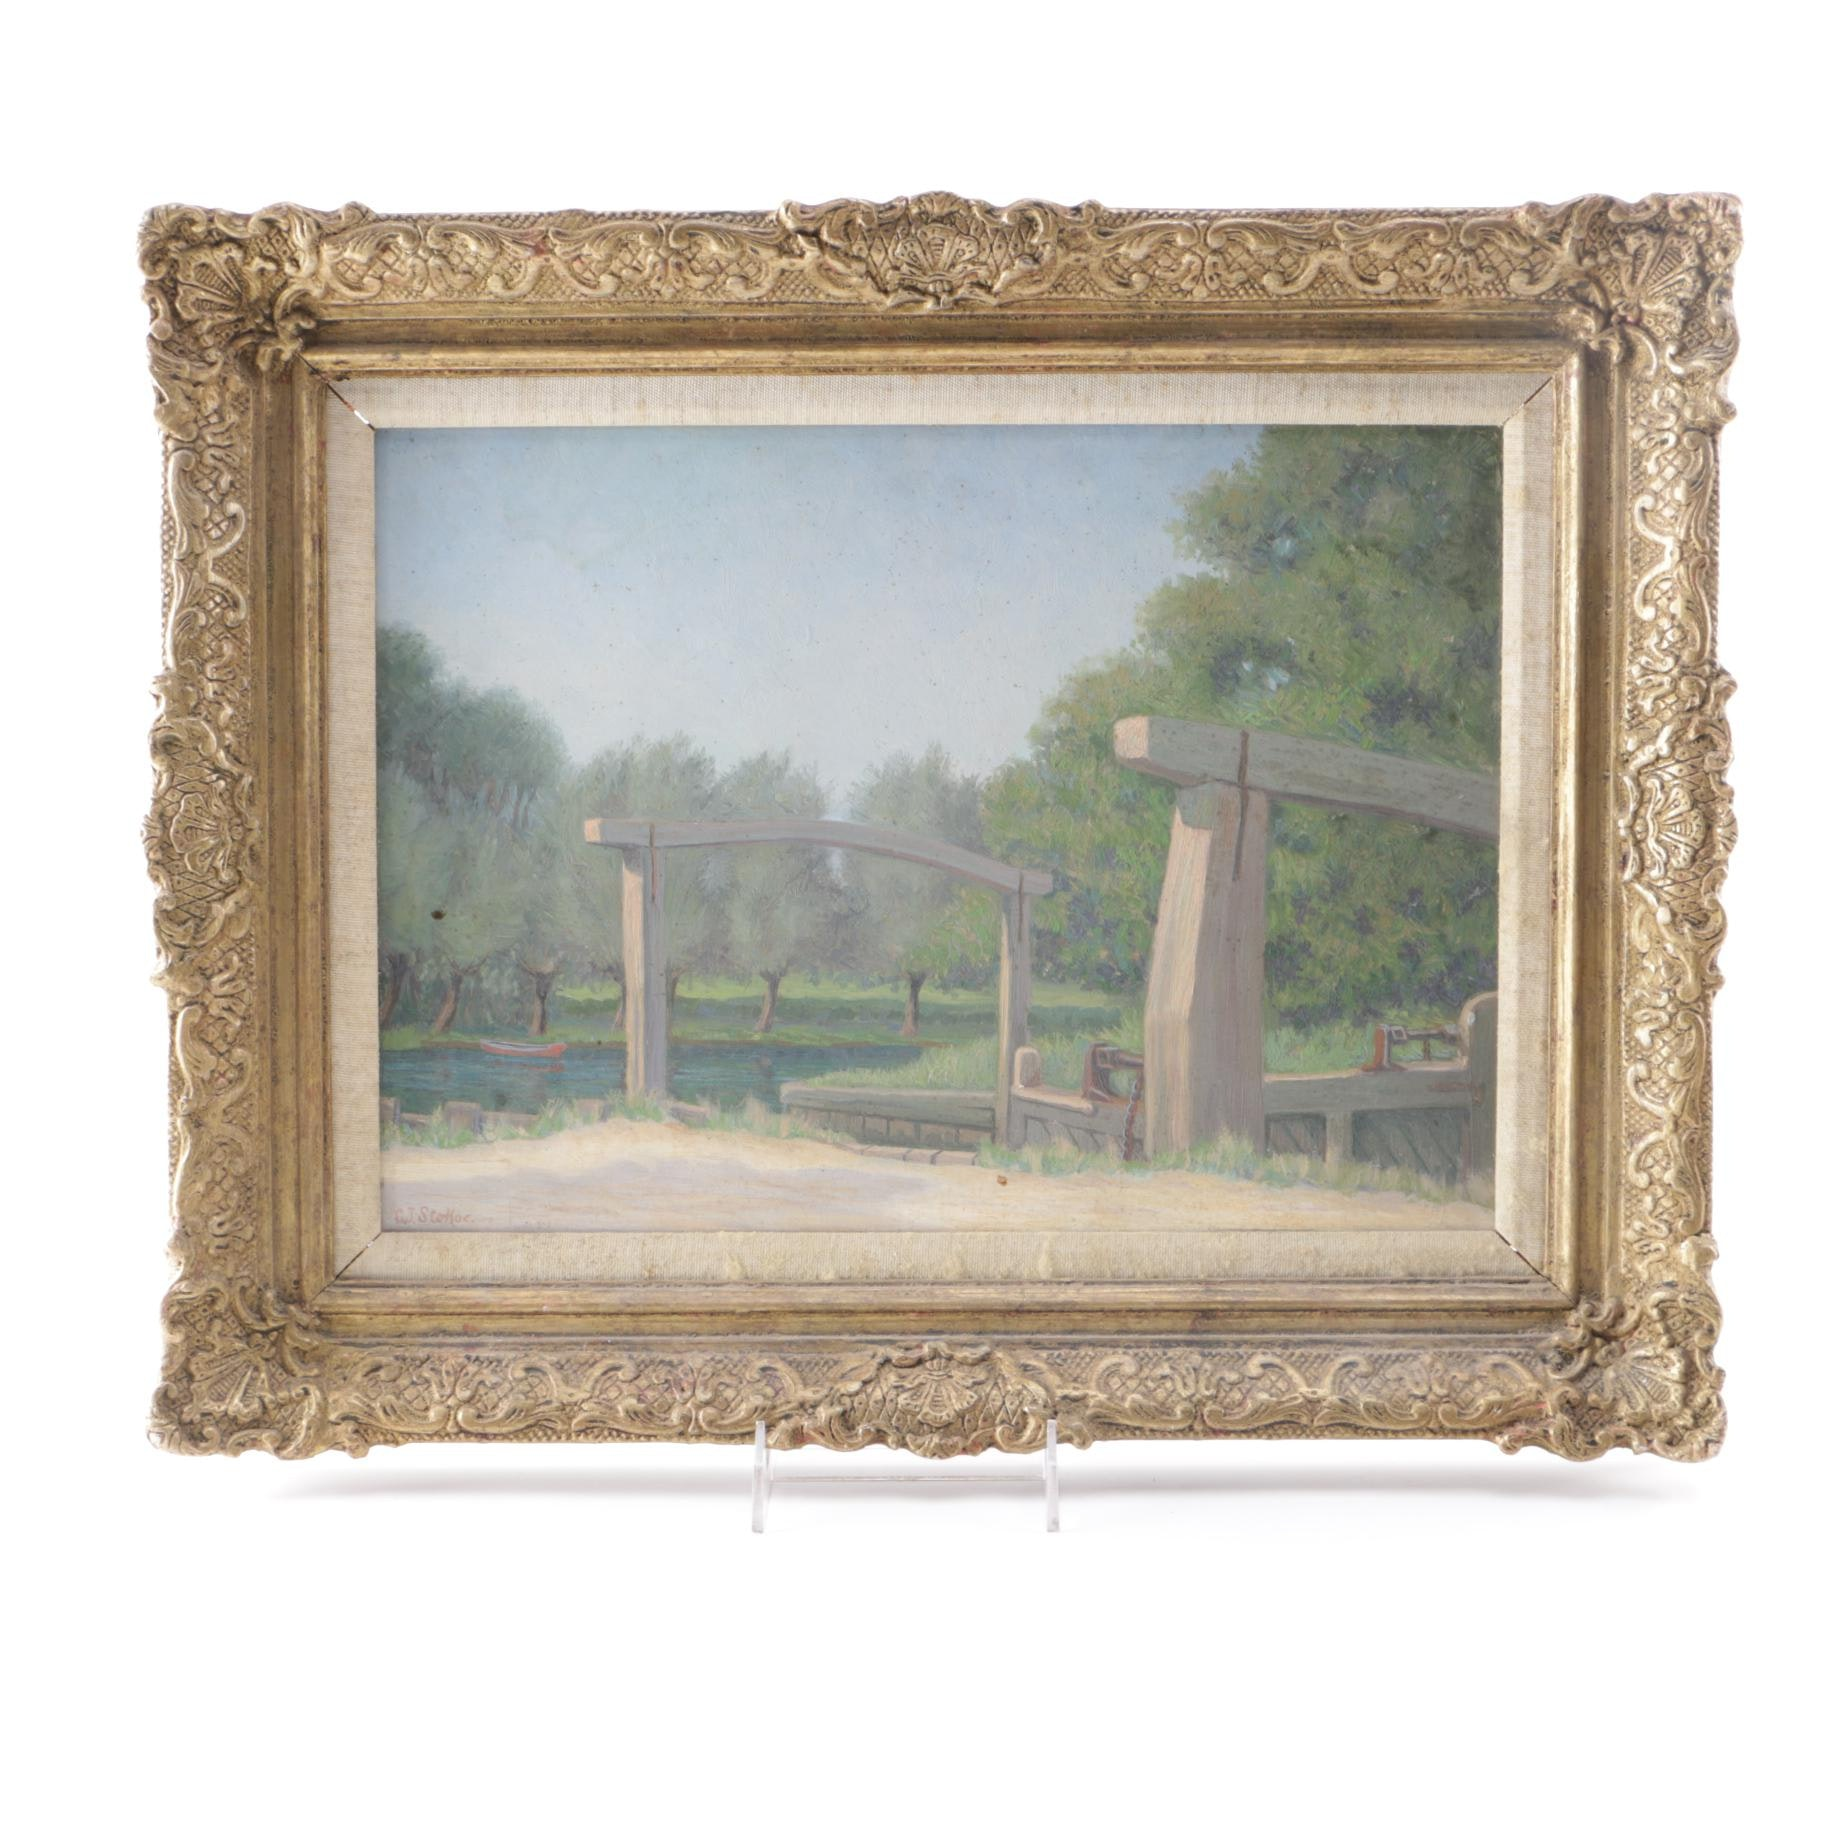 Charles J. Stokoe Oil Painting on Canvas Board of Landscape